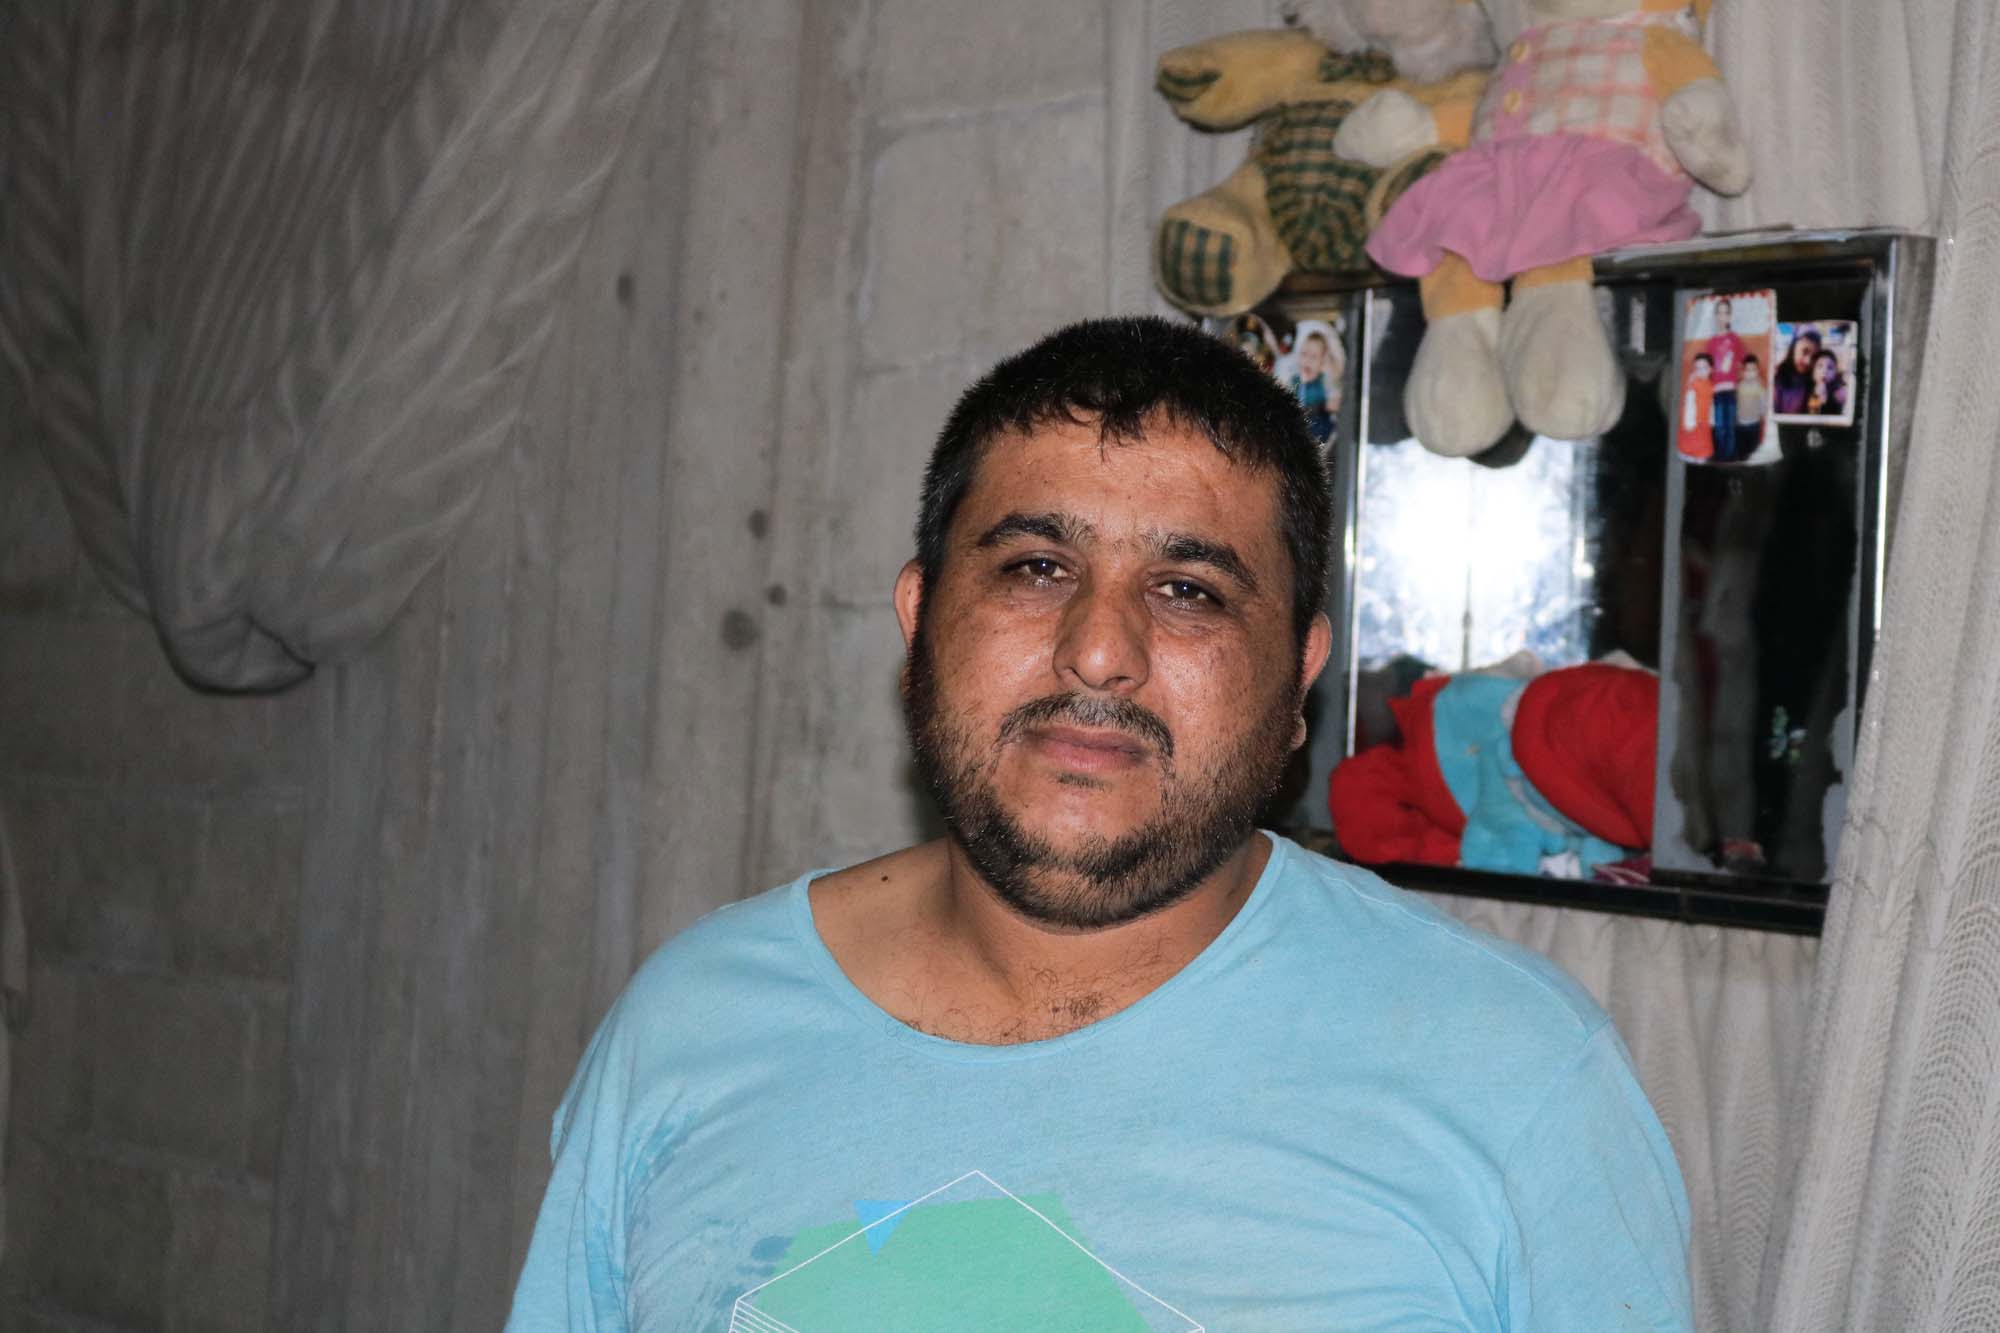 Caritas Syria helped Khalifeh after his heart attack.